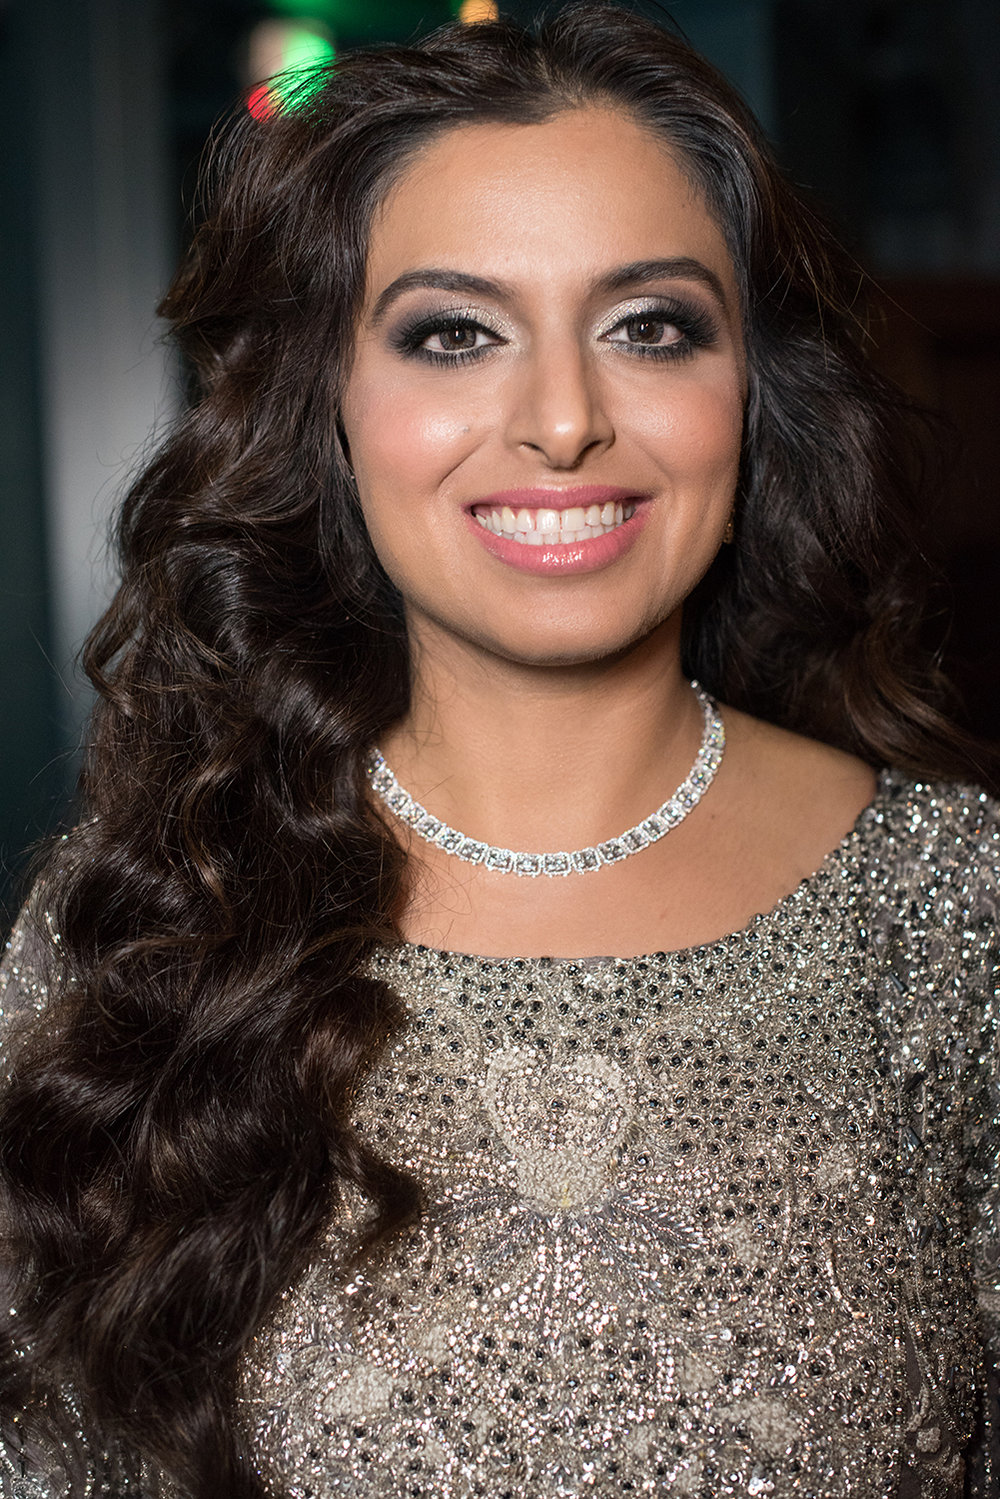 Airbrush Glamorous indian bride silver glitter eyeshadow grey black pink lips by Beauty Affair Agne Skaringa copy.jpg